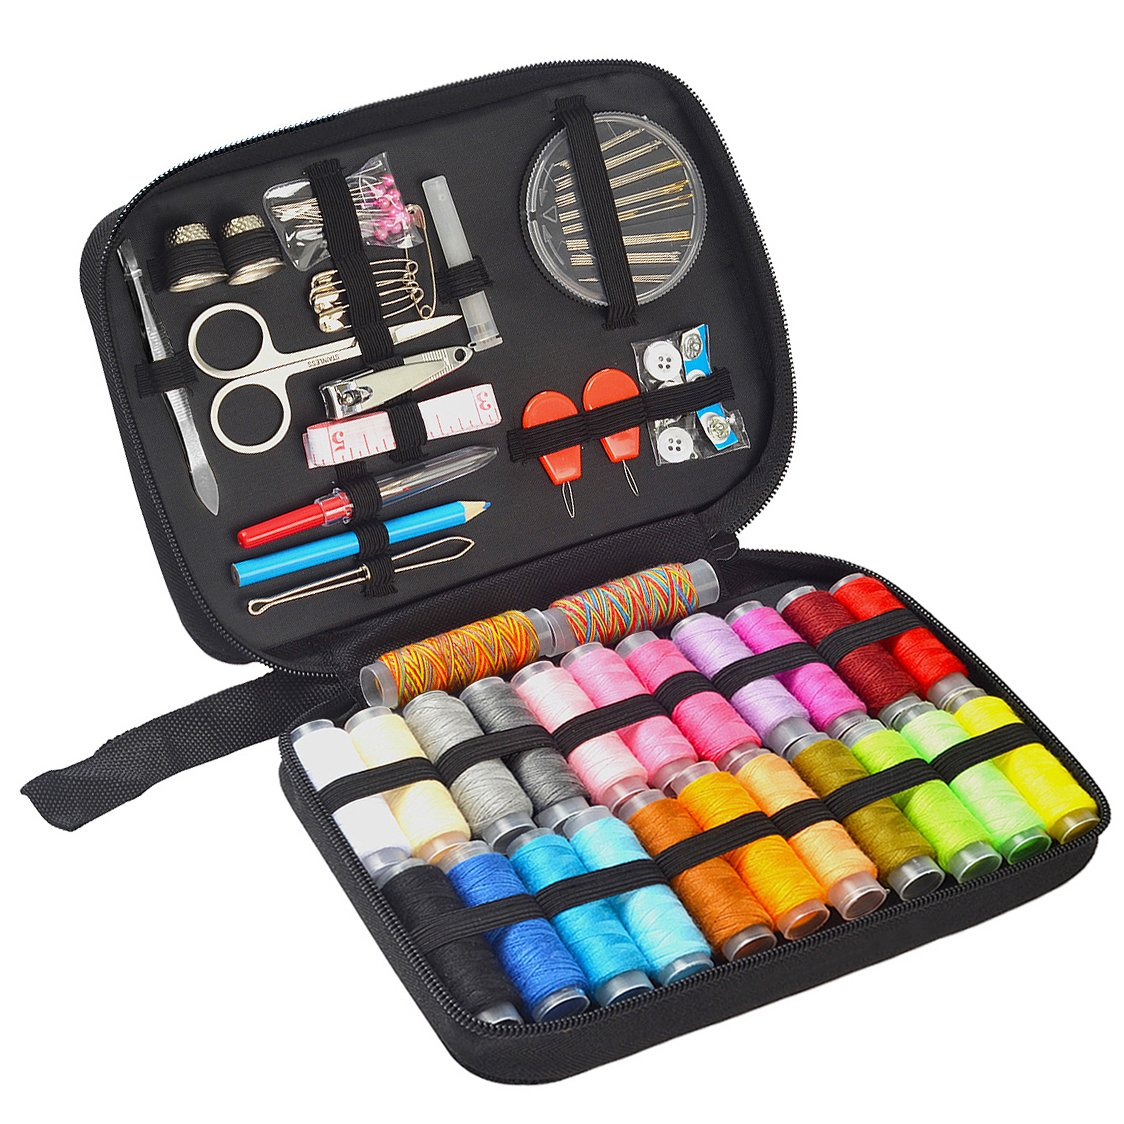 Sewing Kit - Over 100 DIY Sewing Supplies & 24 Mixed Color Threads, Portable & Complete Sew Kit for Traveller, Beginner, Emergency - Filled with Mending Tools and Sewing Accessories